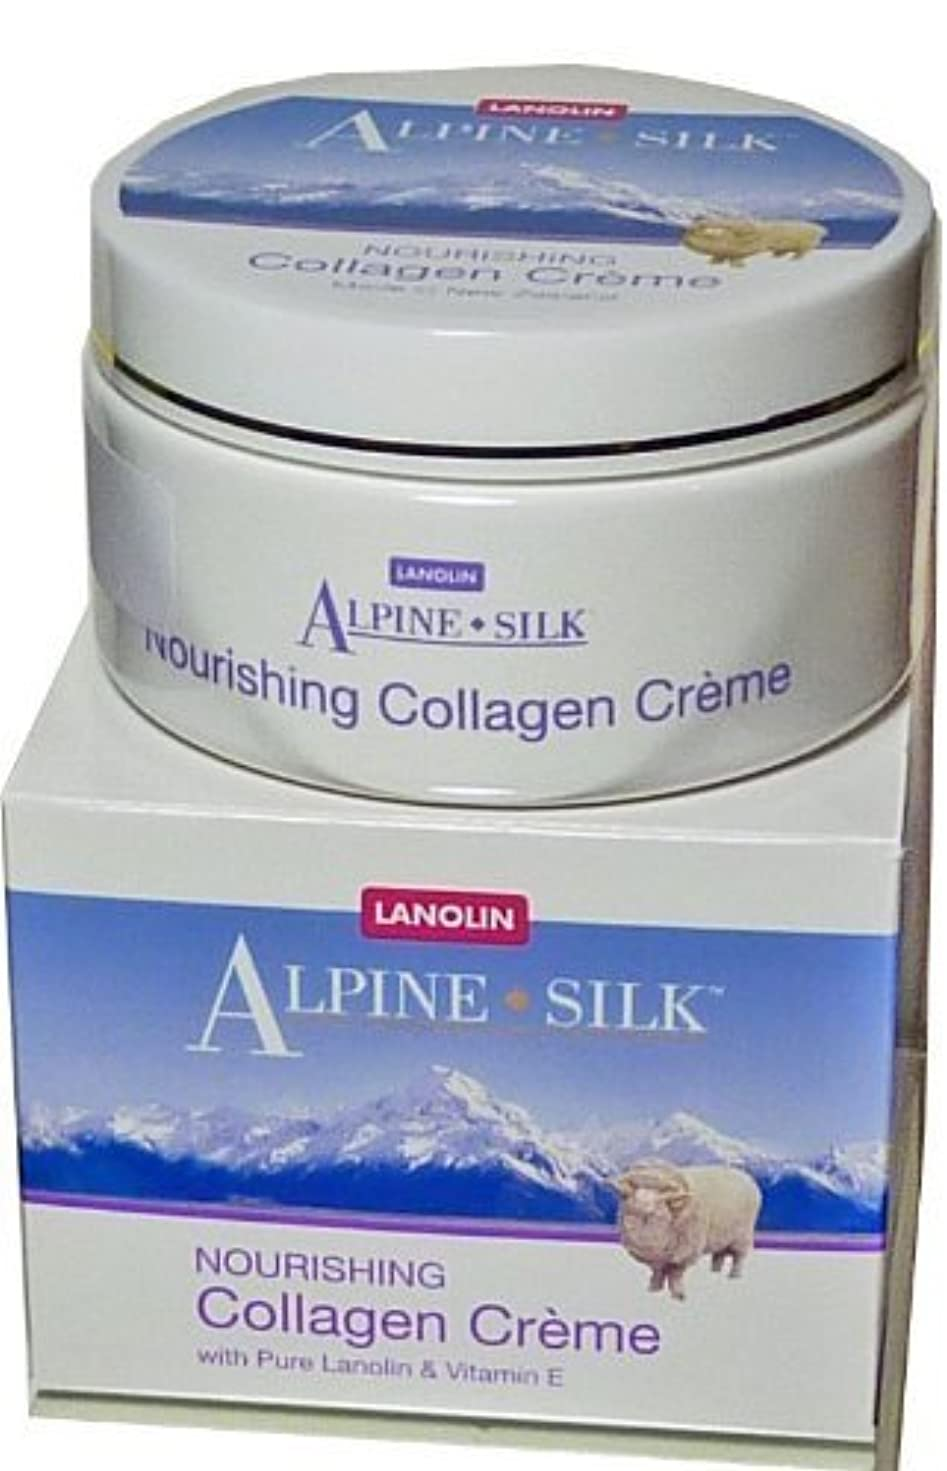 ベーリング海峡漂流接続詞Alpine Silk Lanolin Collagen Cream (250 gr/8.81 oz) by Alpine Silk [並行輸入品]